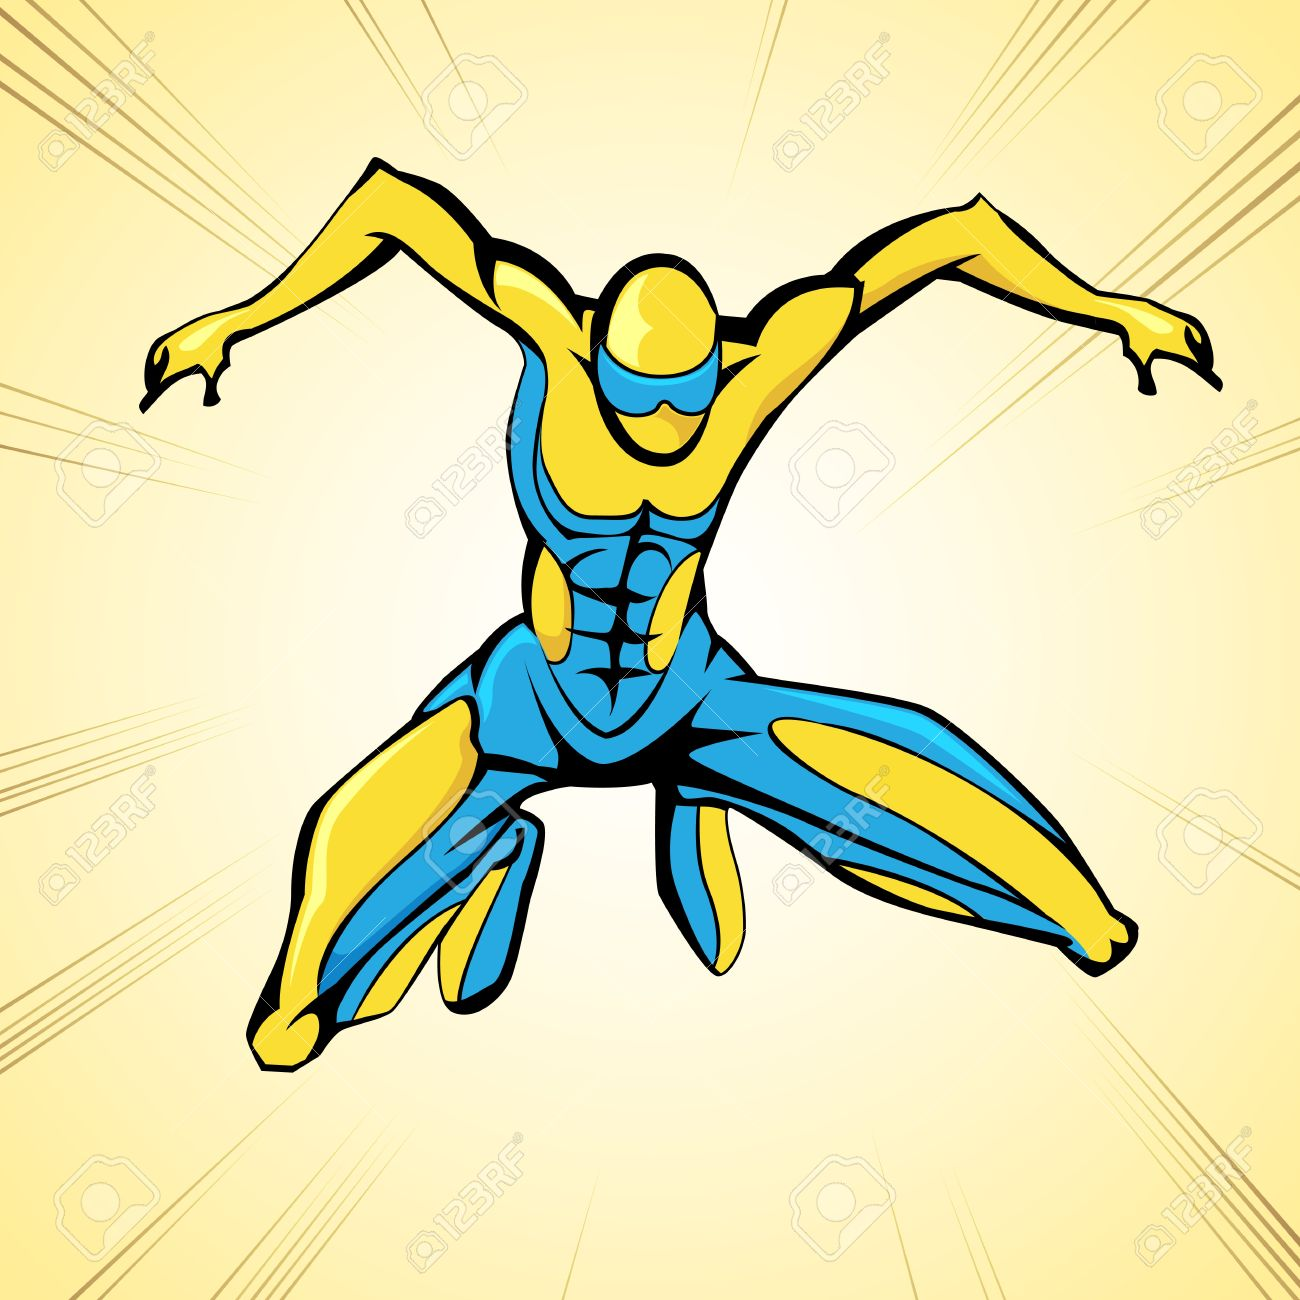 illustration of jumping superhero on abstract background Stock Vector - 13475322